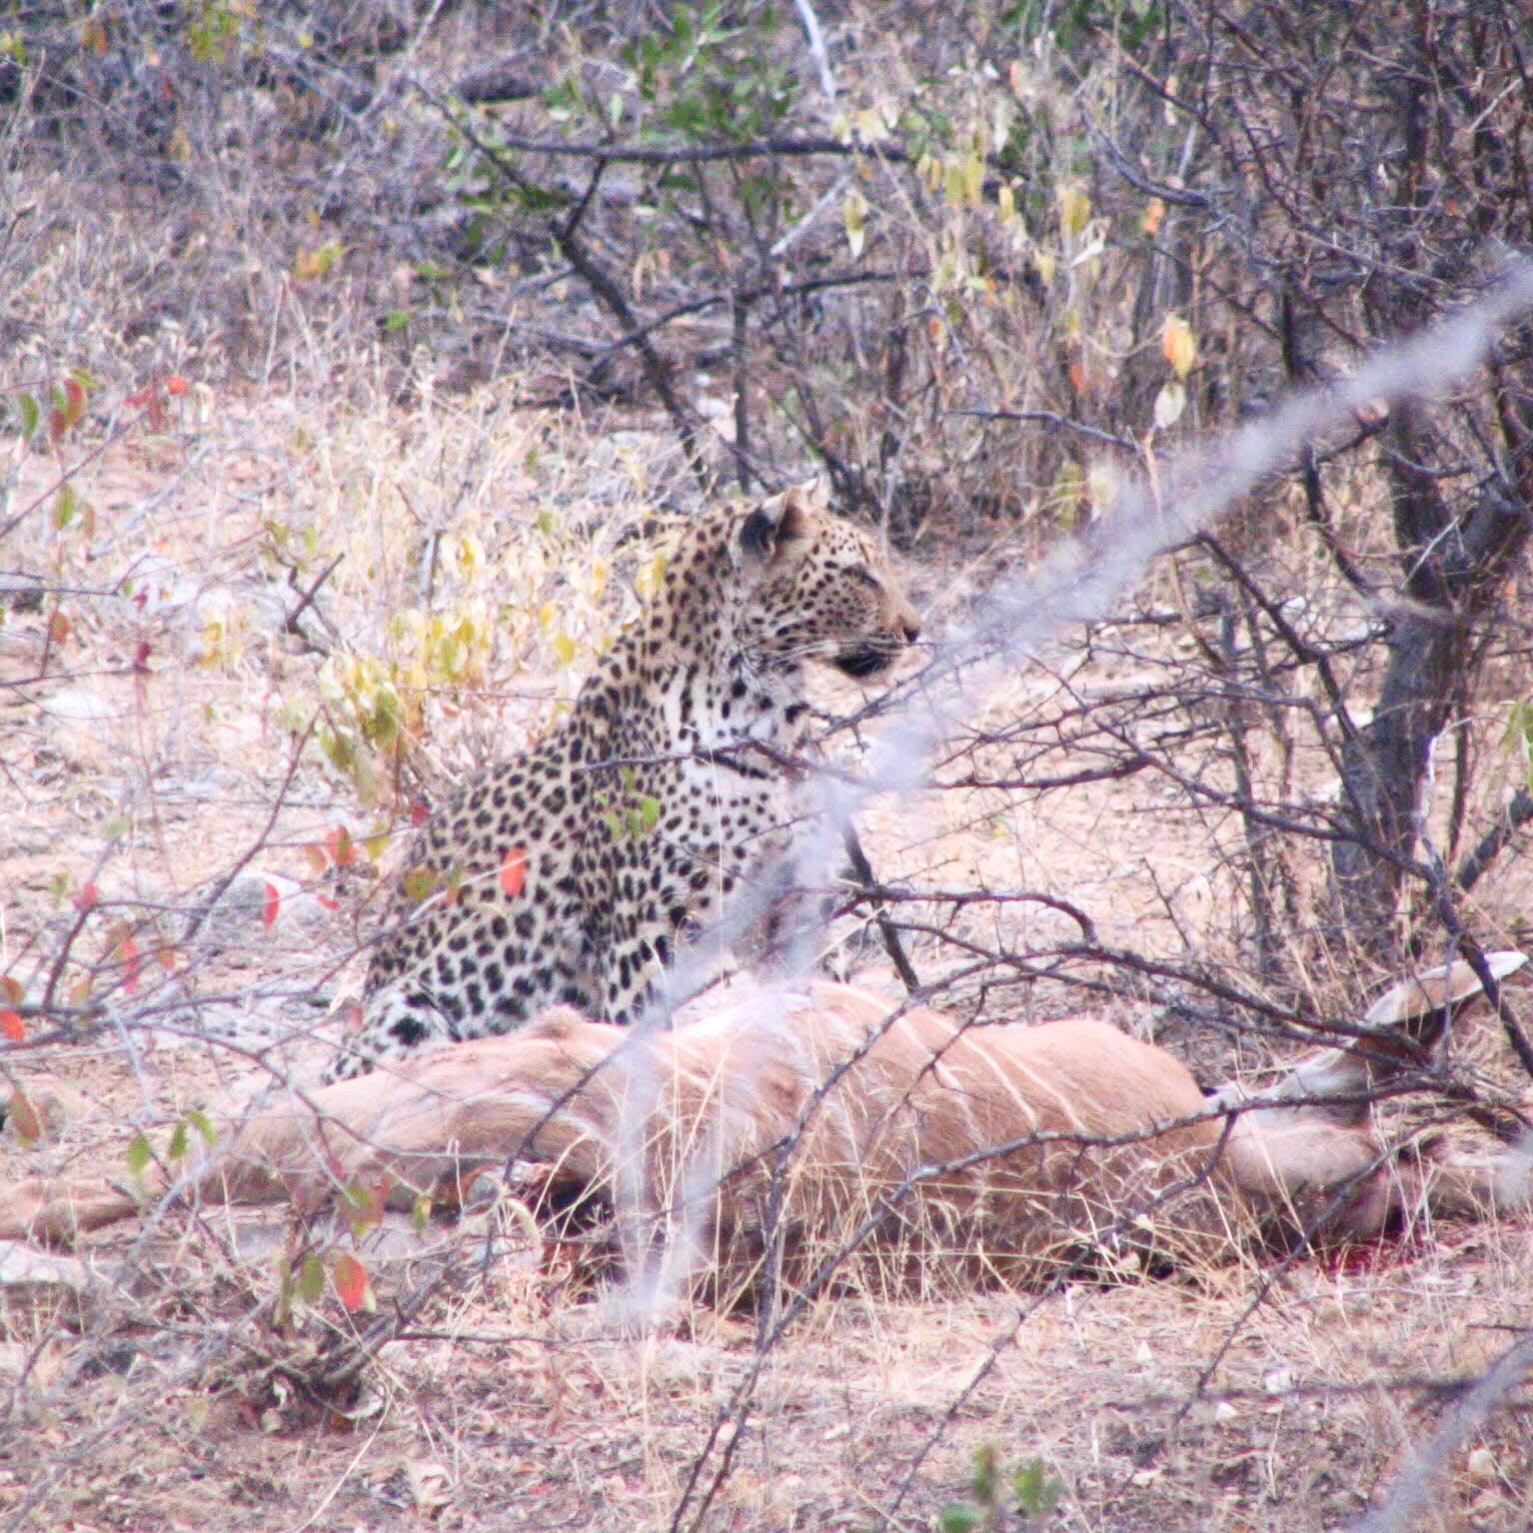 Female leopard in Etosha National Park, Namibia